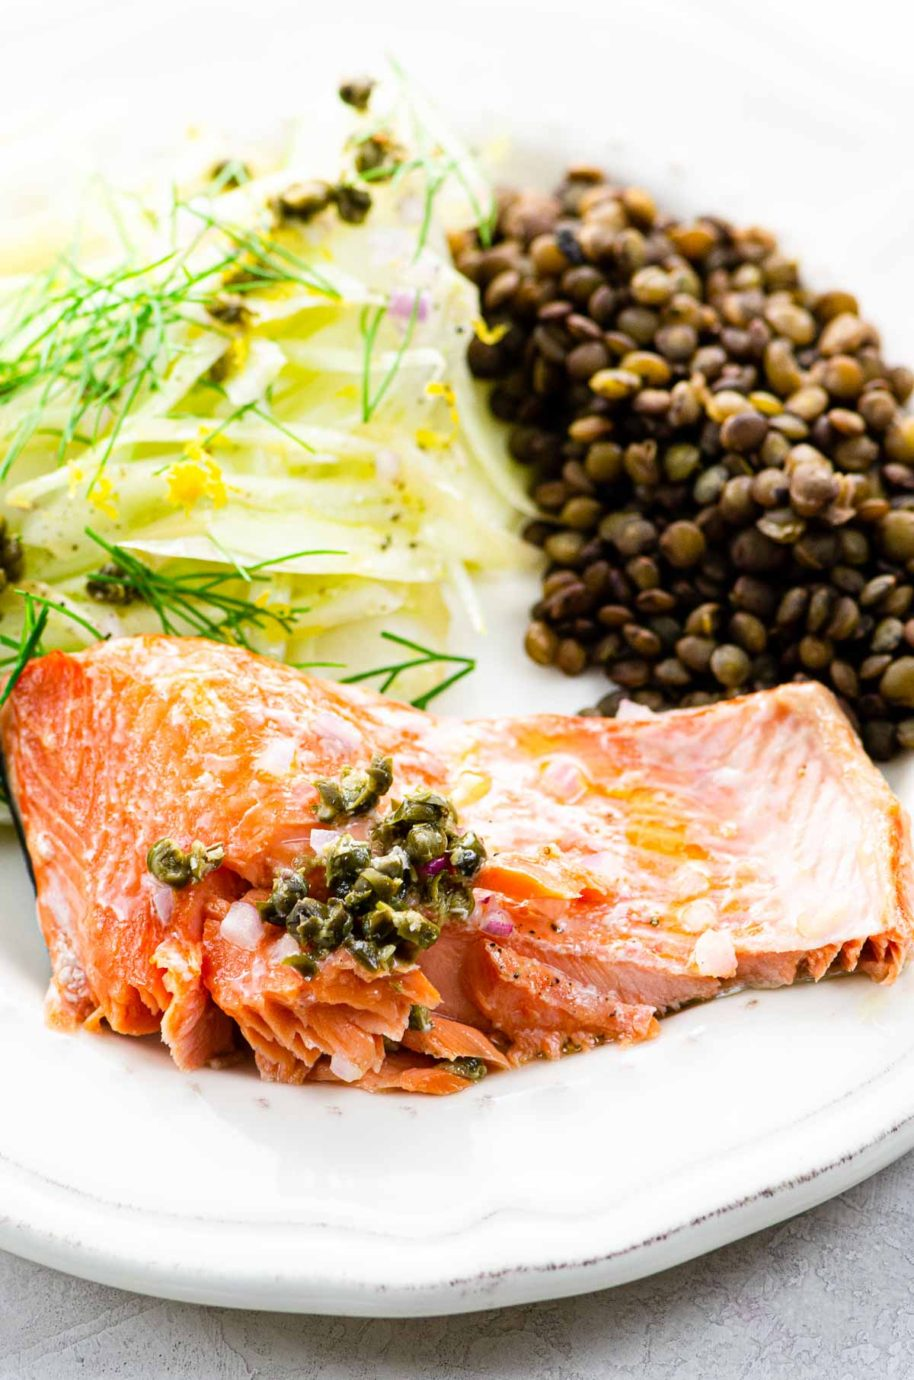 roasted salmon, lentils, and fennel salad on a plate